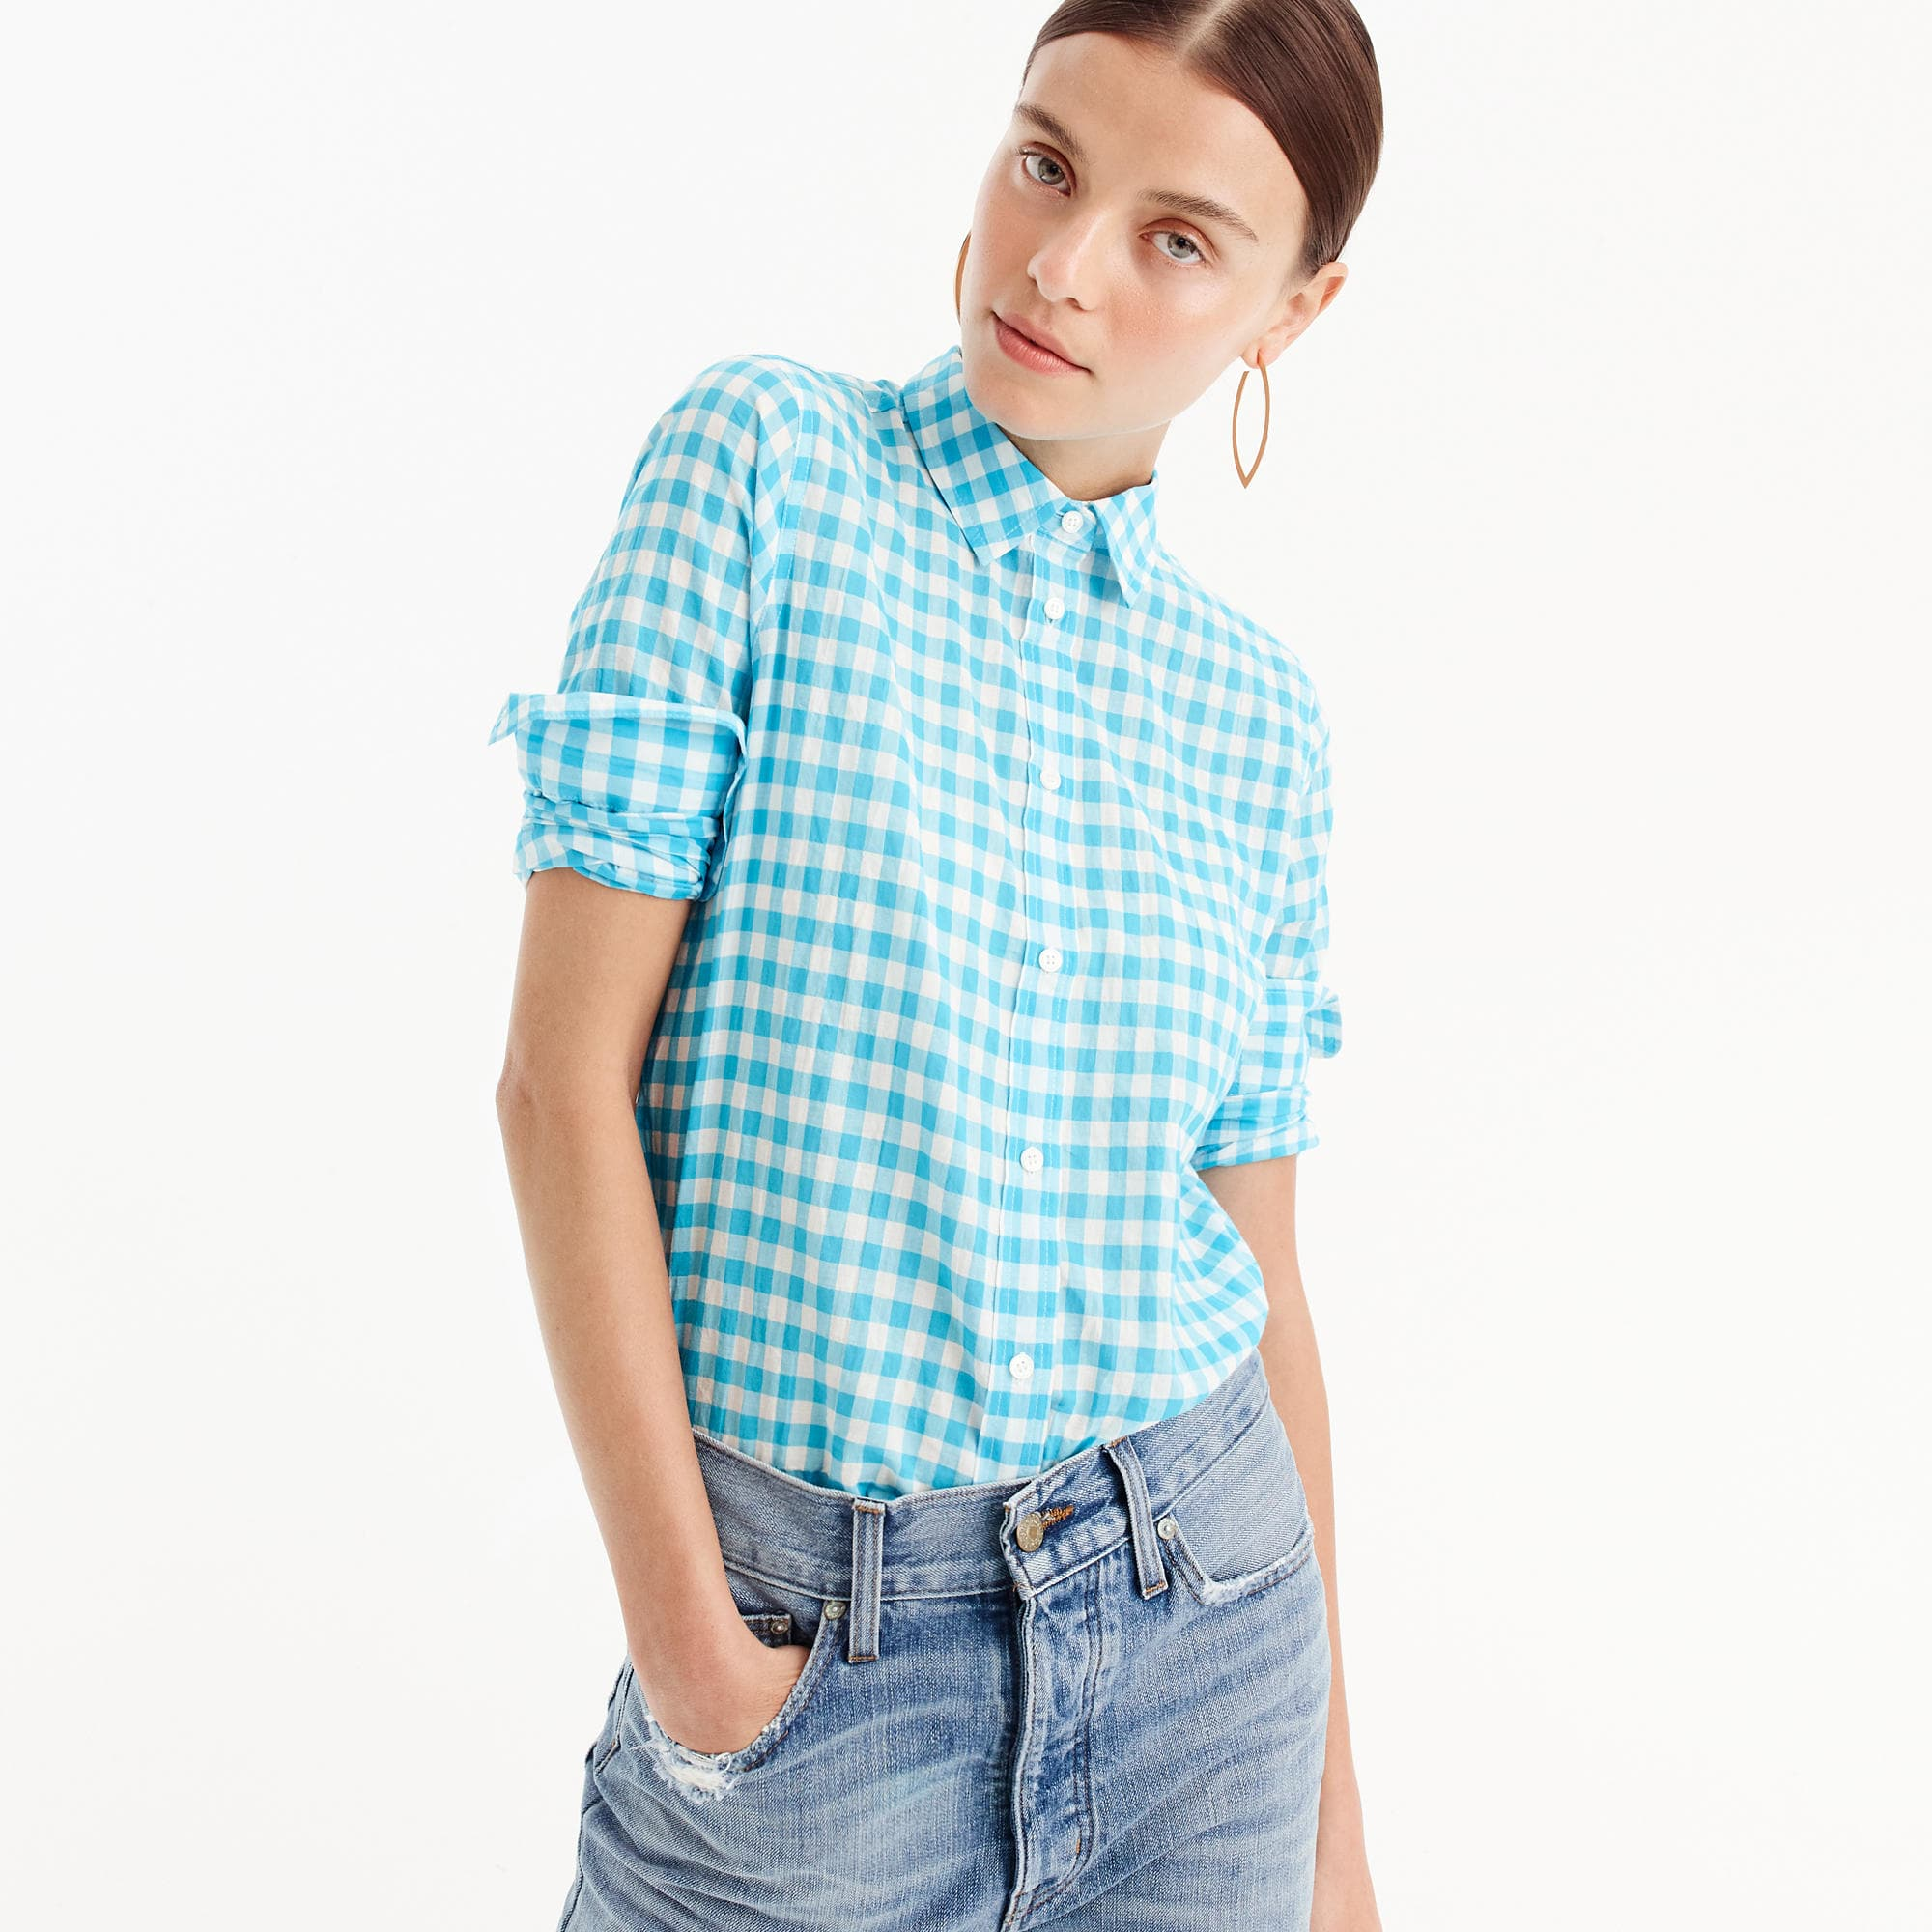 Gingham Blouse From JCrew